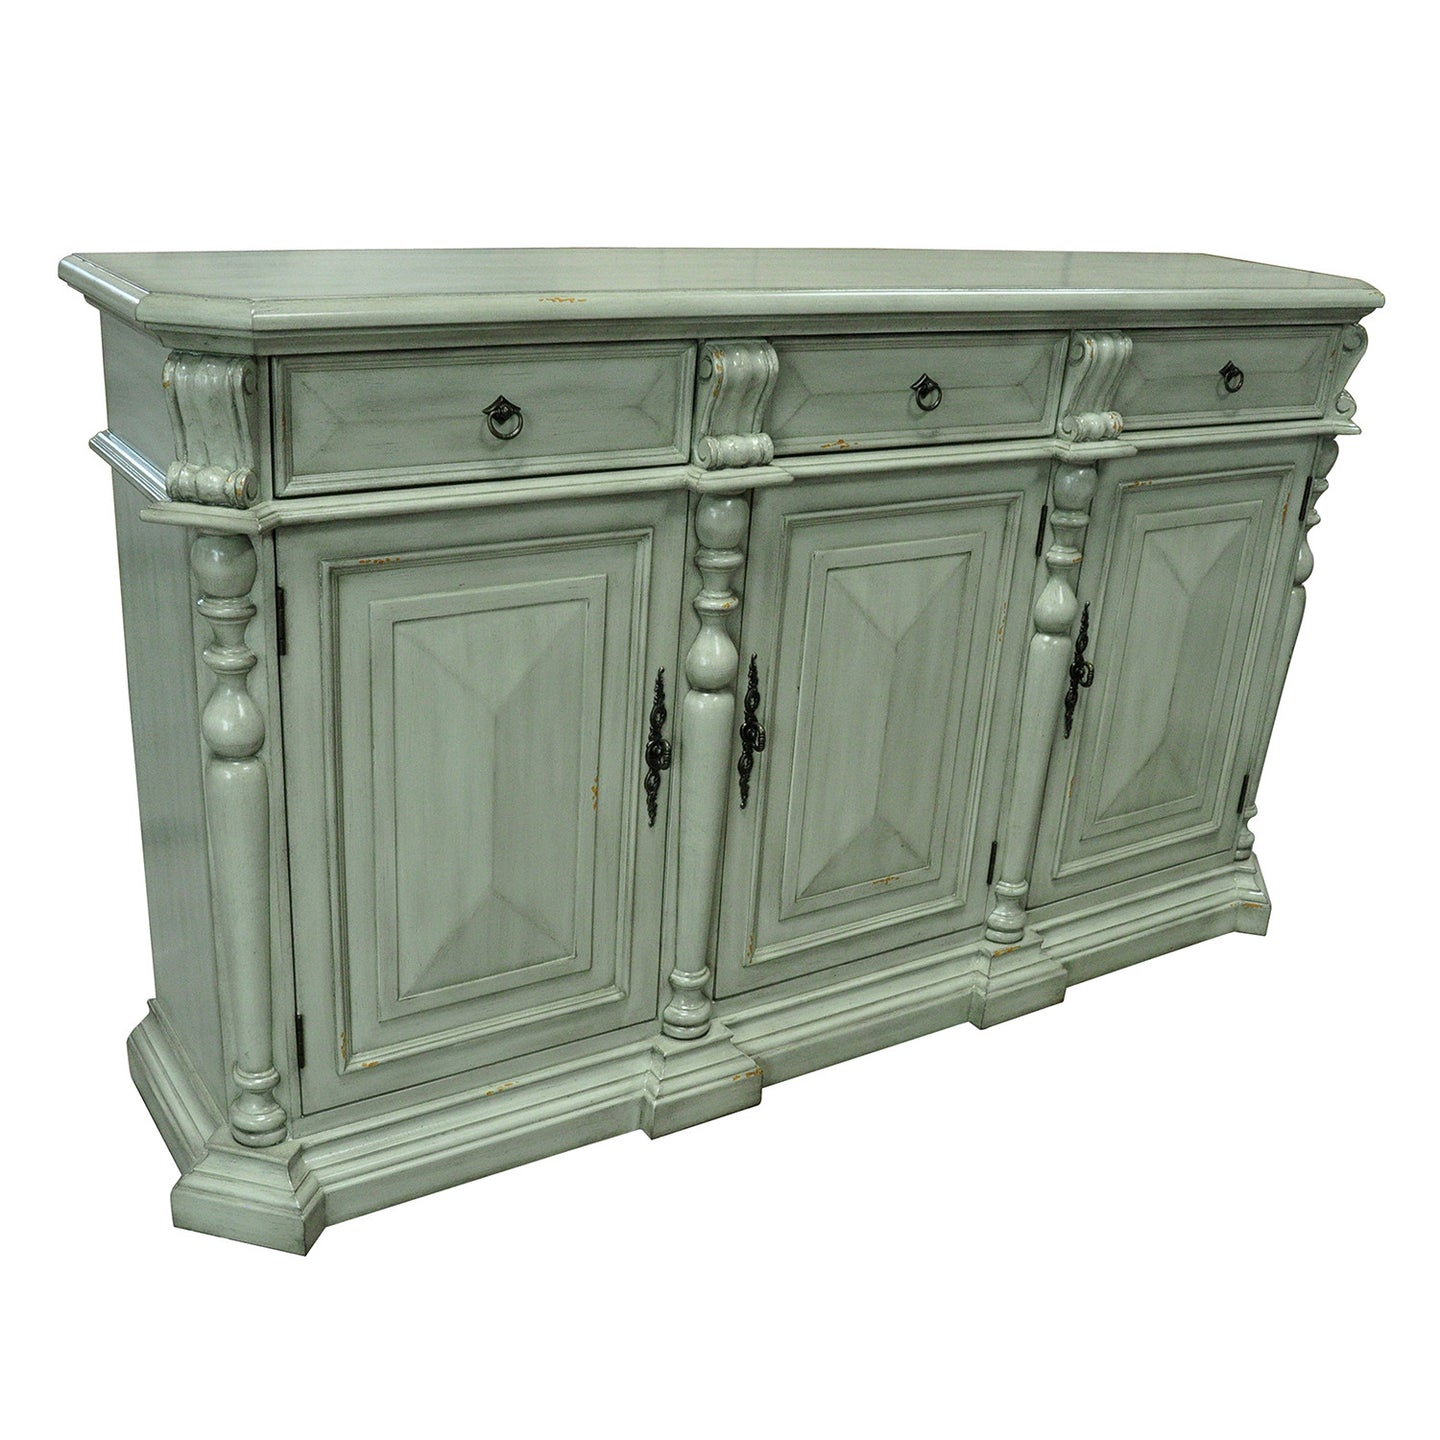 Sterling 3 Drawer / 3 Door British Grey Sideboard - The Rustic Furniture Store